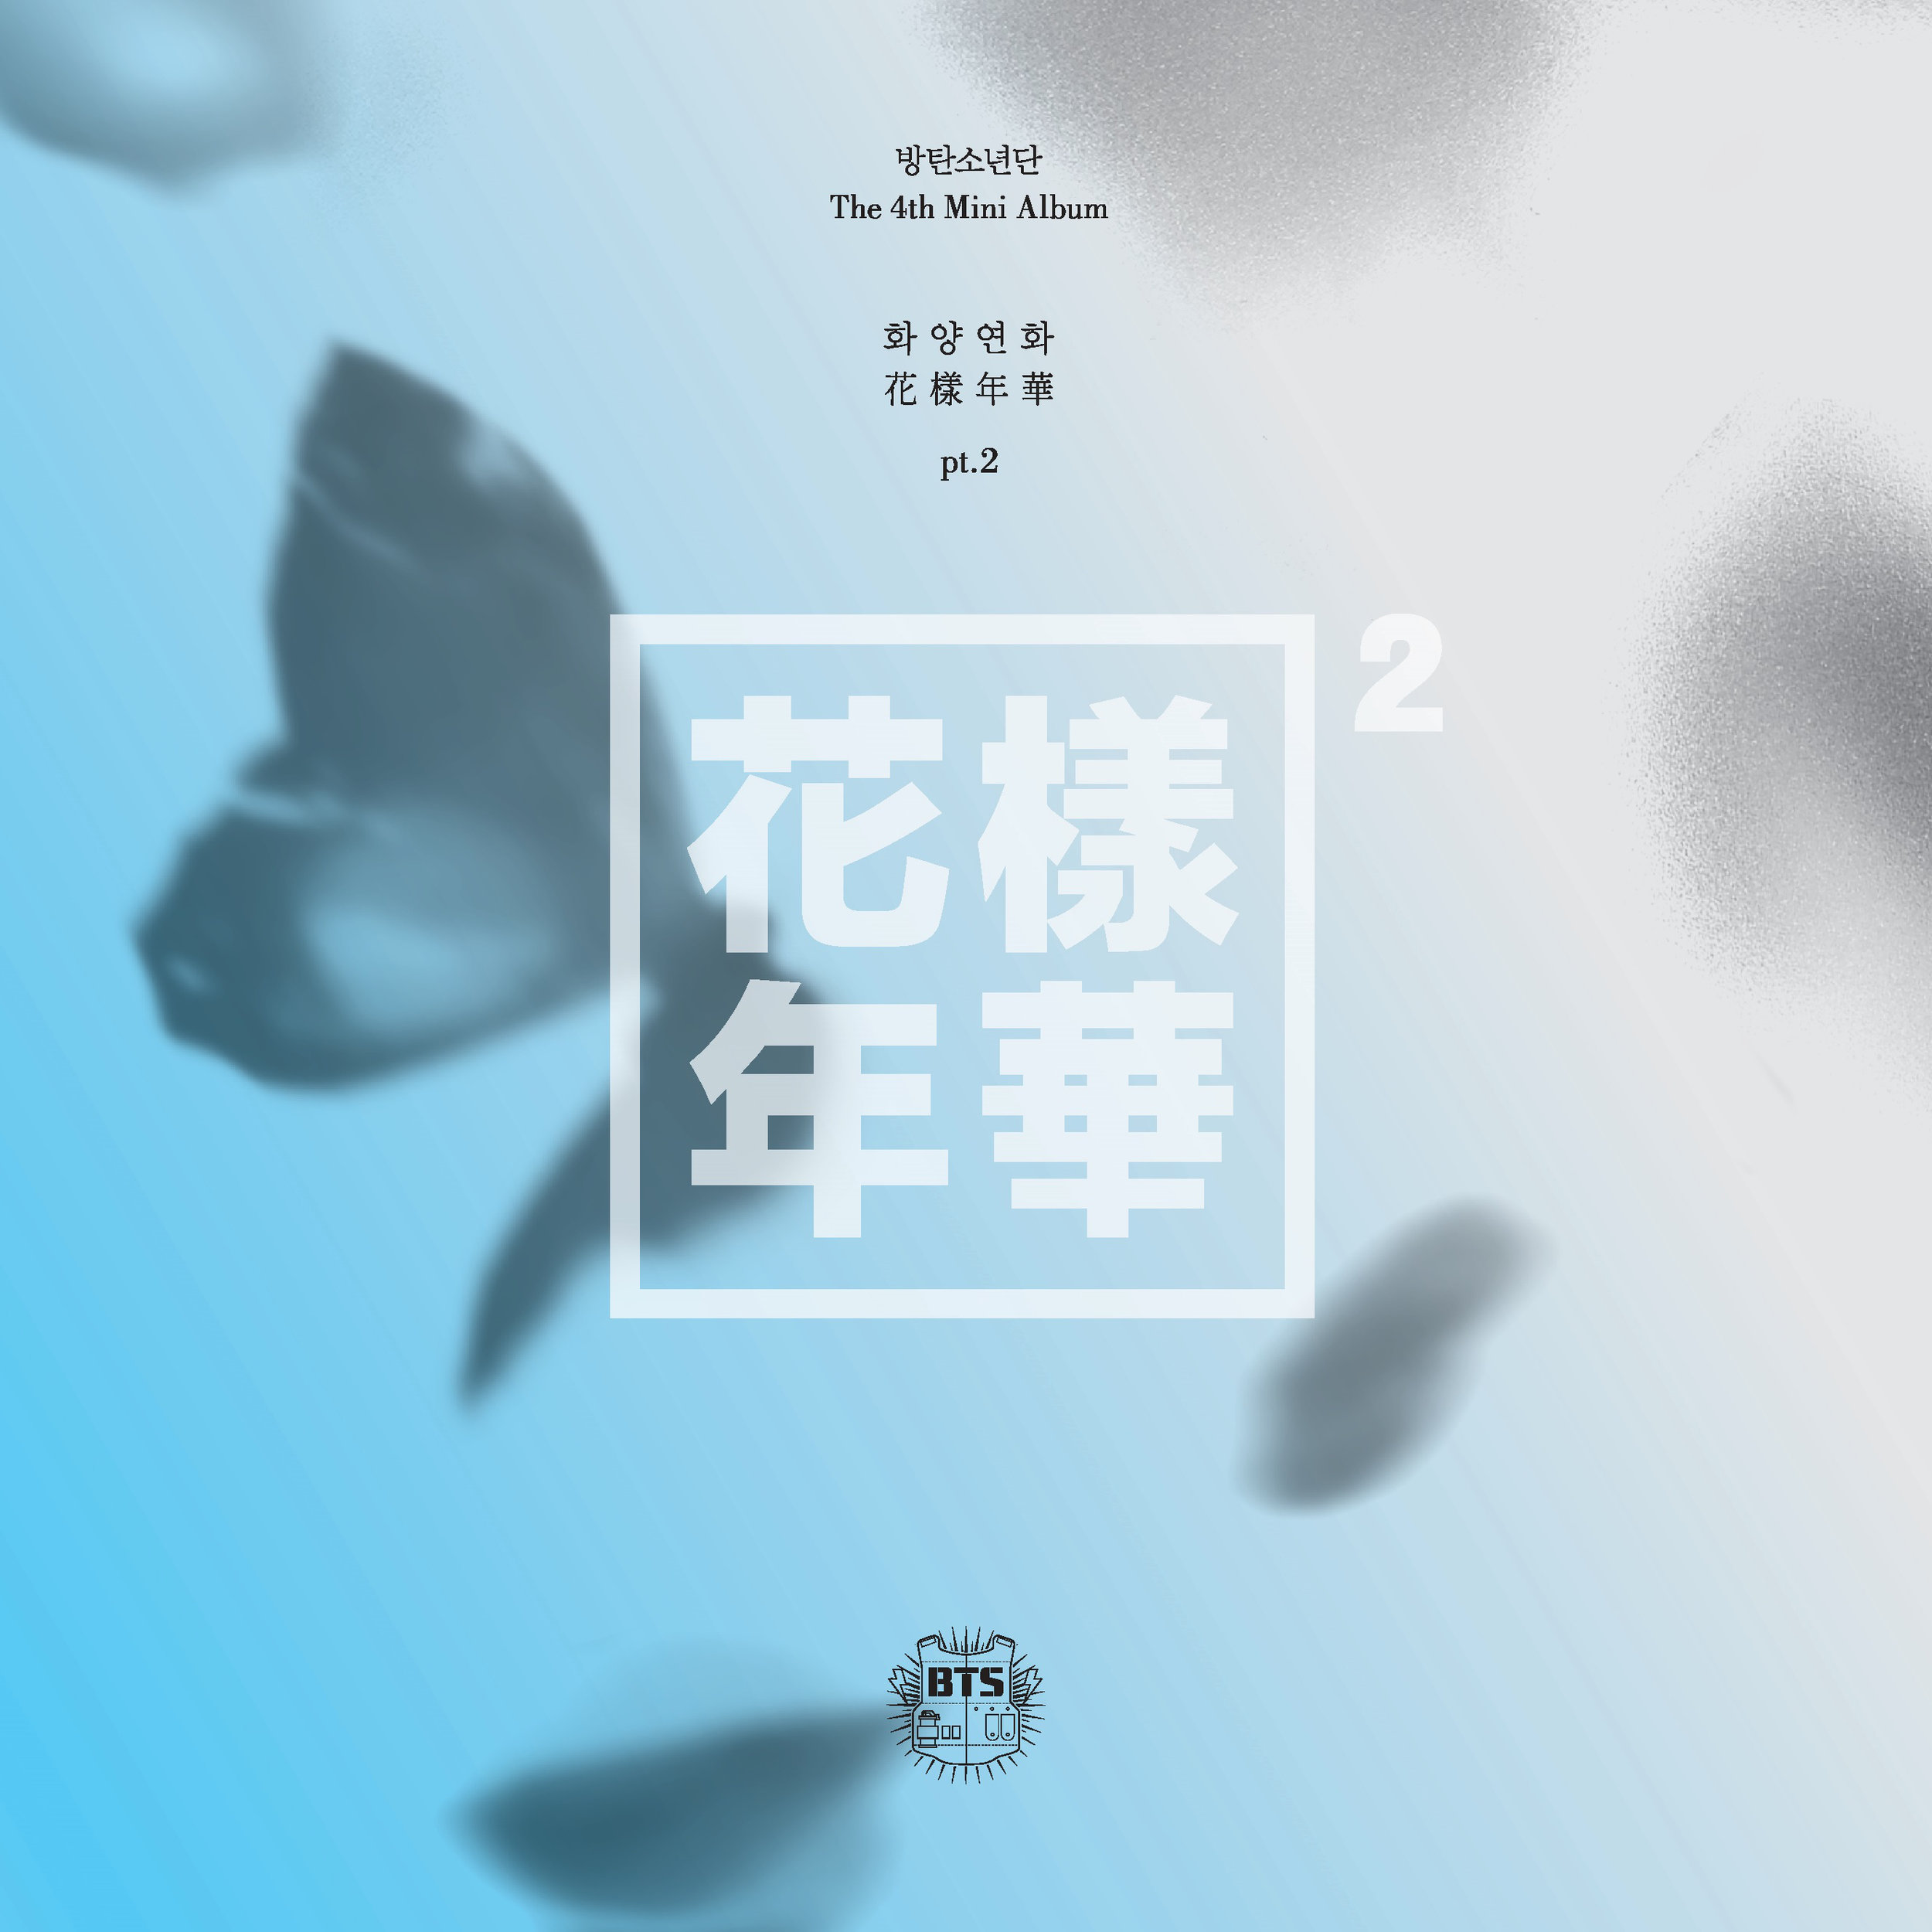 The Most Beautiful Moment In Life, pt. 2 - 1. Intro: Never Mind2. RUN3. Butterfly 4. Whalien 525. Ma City6. 뱁새 (Baepsae / Silver Spoon)7. Skit: One Night in a Strange City8. 고엽 (Dead Leaves)9. Outro: House of Cards